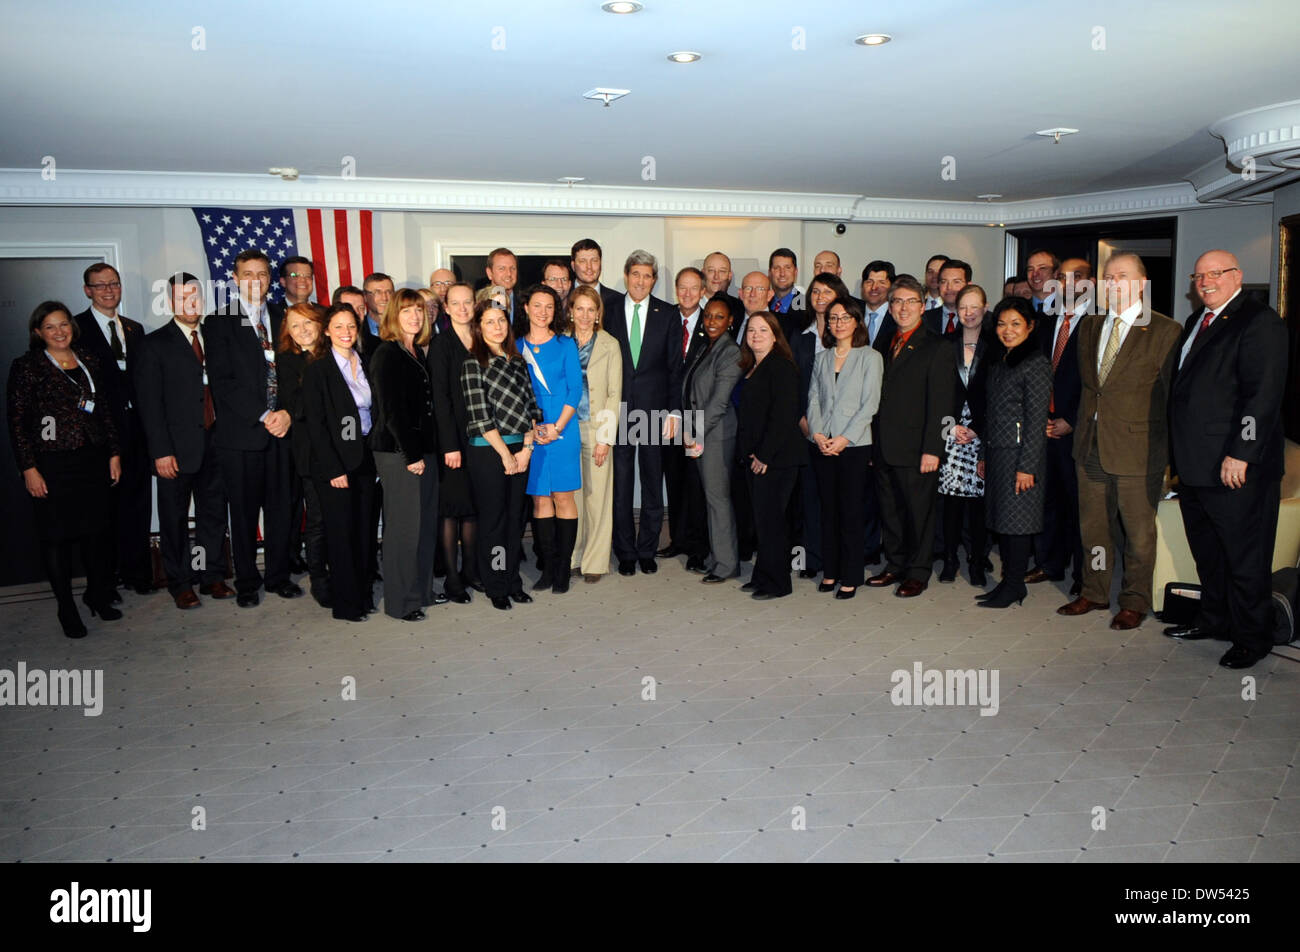 Secretary Kerry Poses for Group Photo With State Department Team in Germany - Stock Image